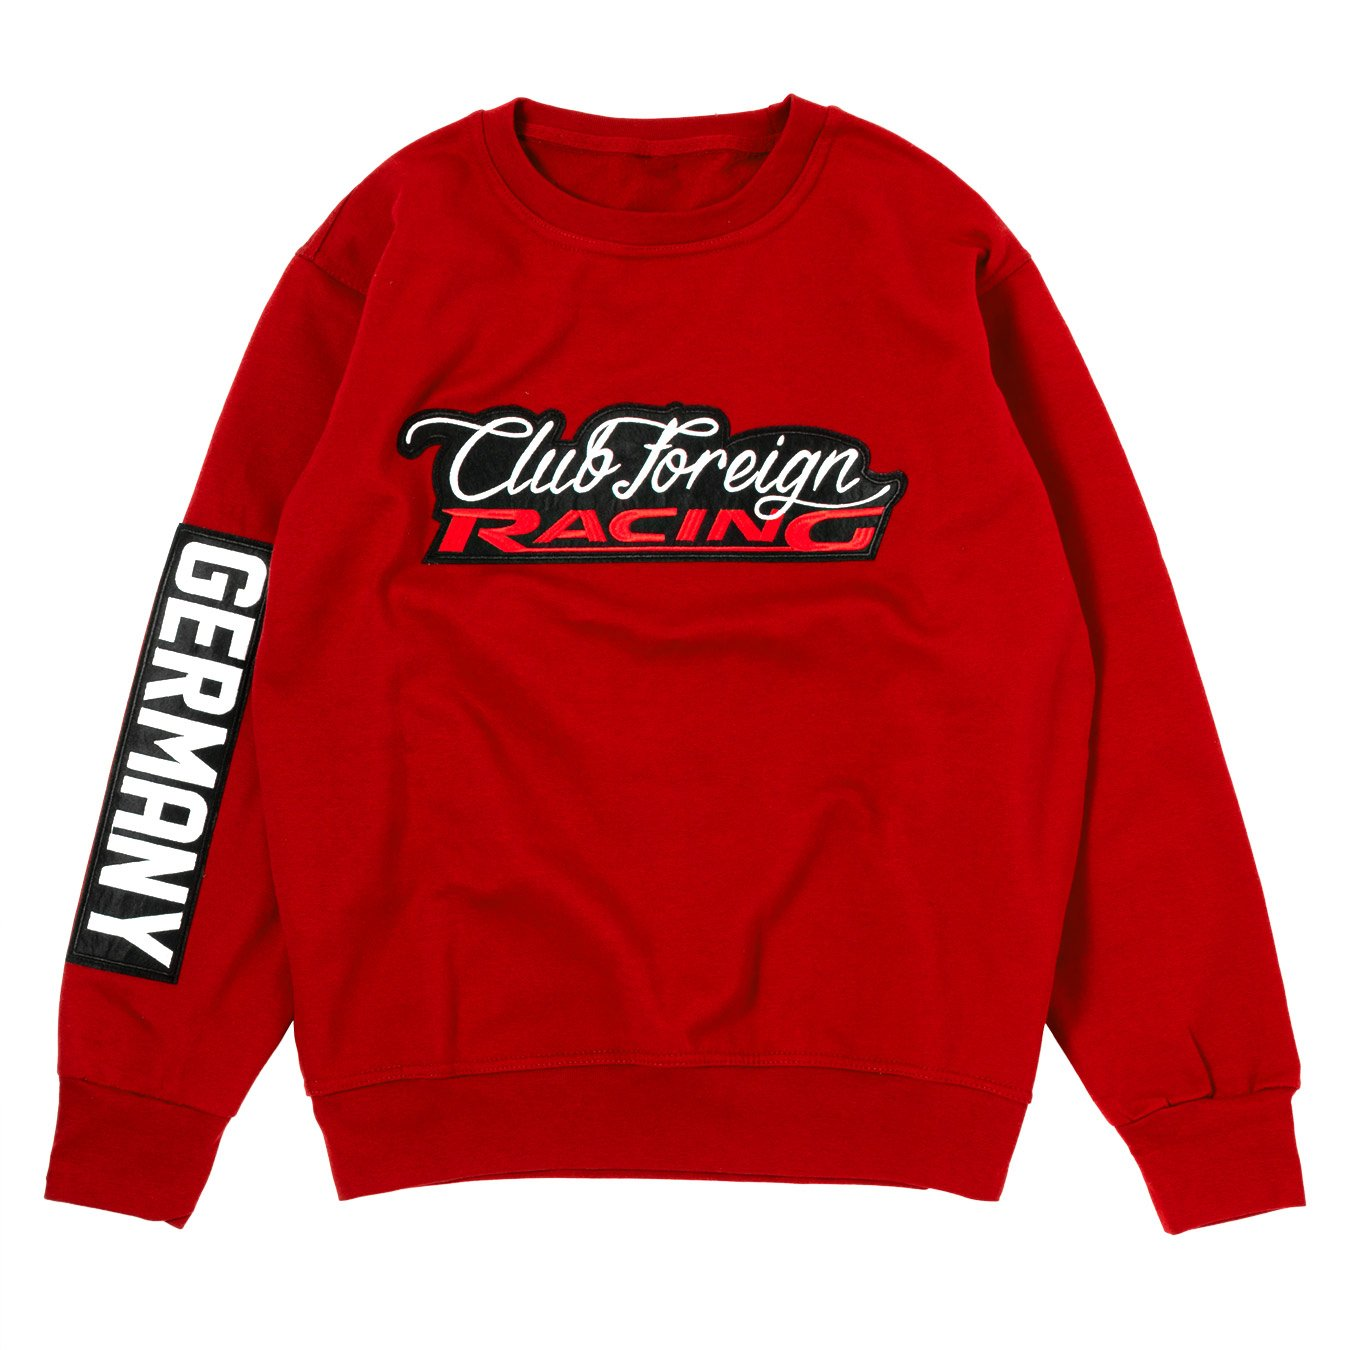 ClubForeign Racing Crew Red